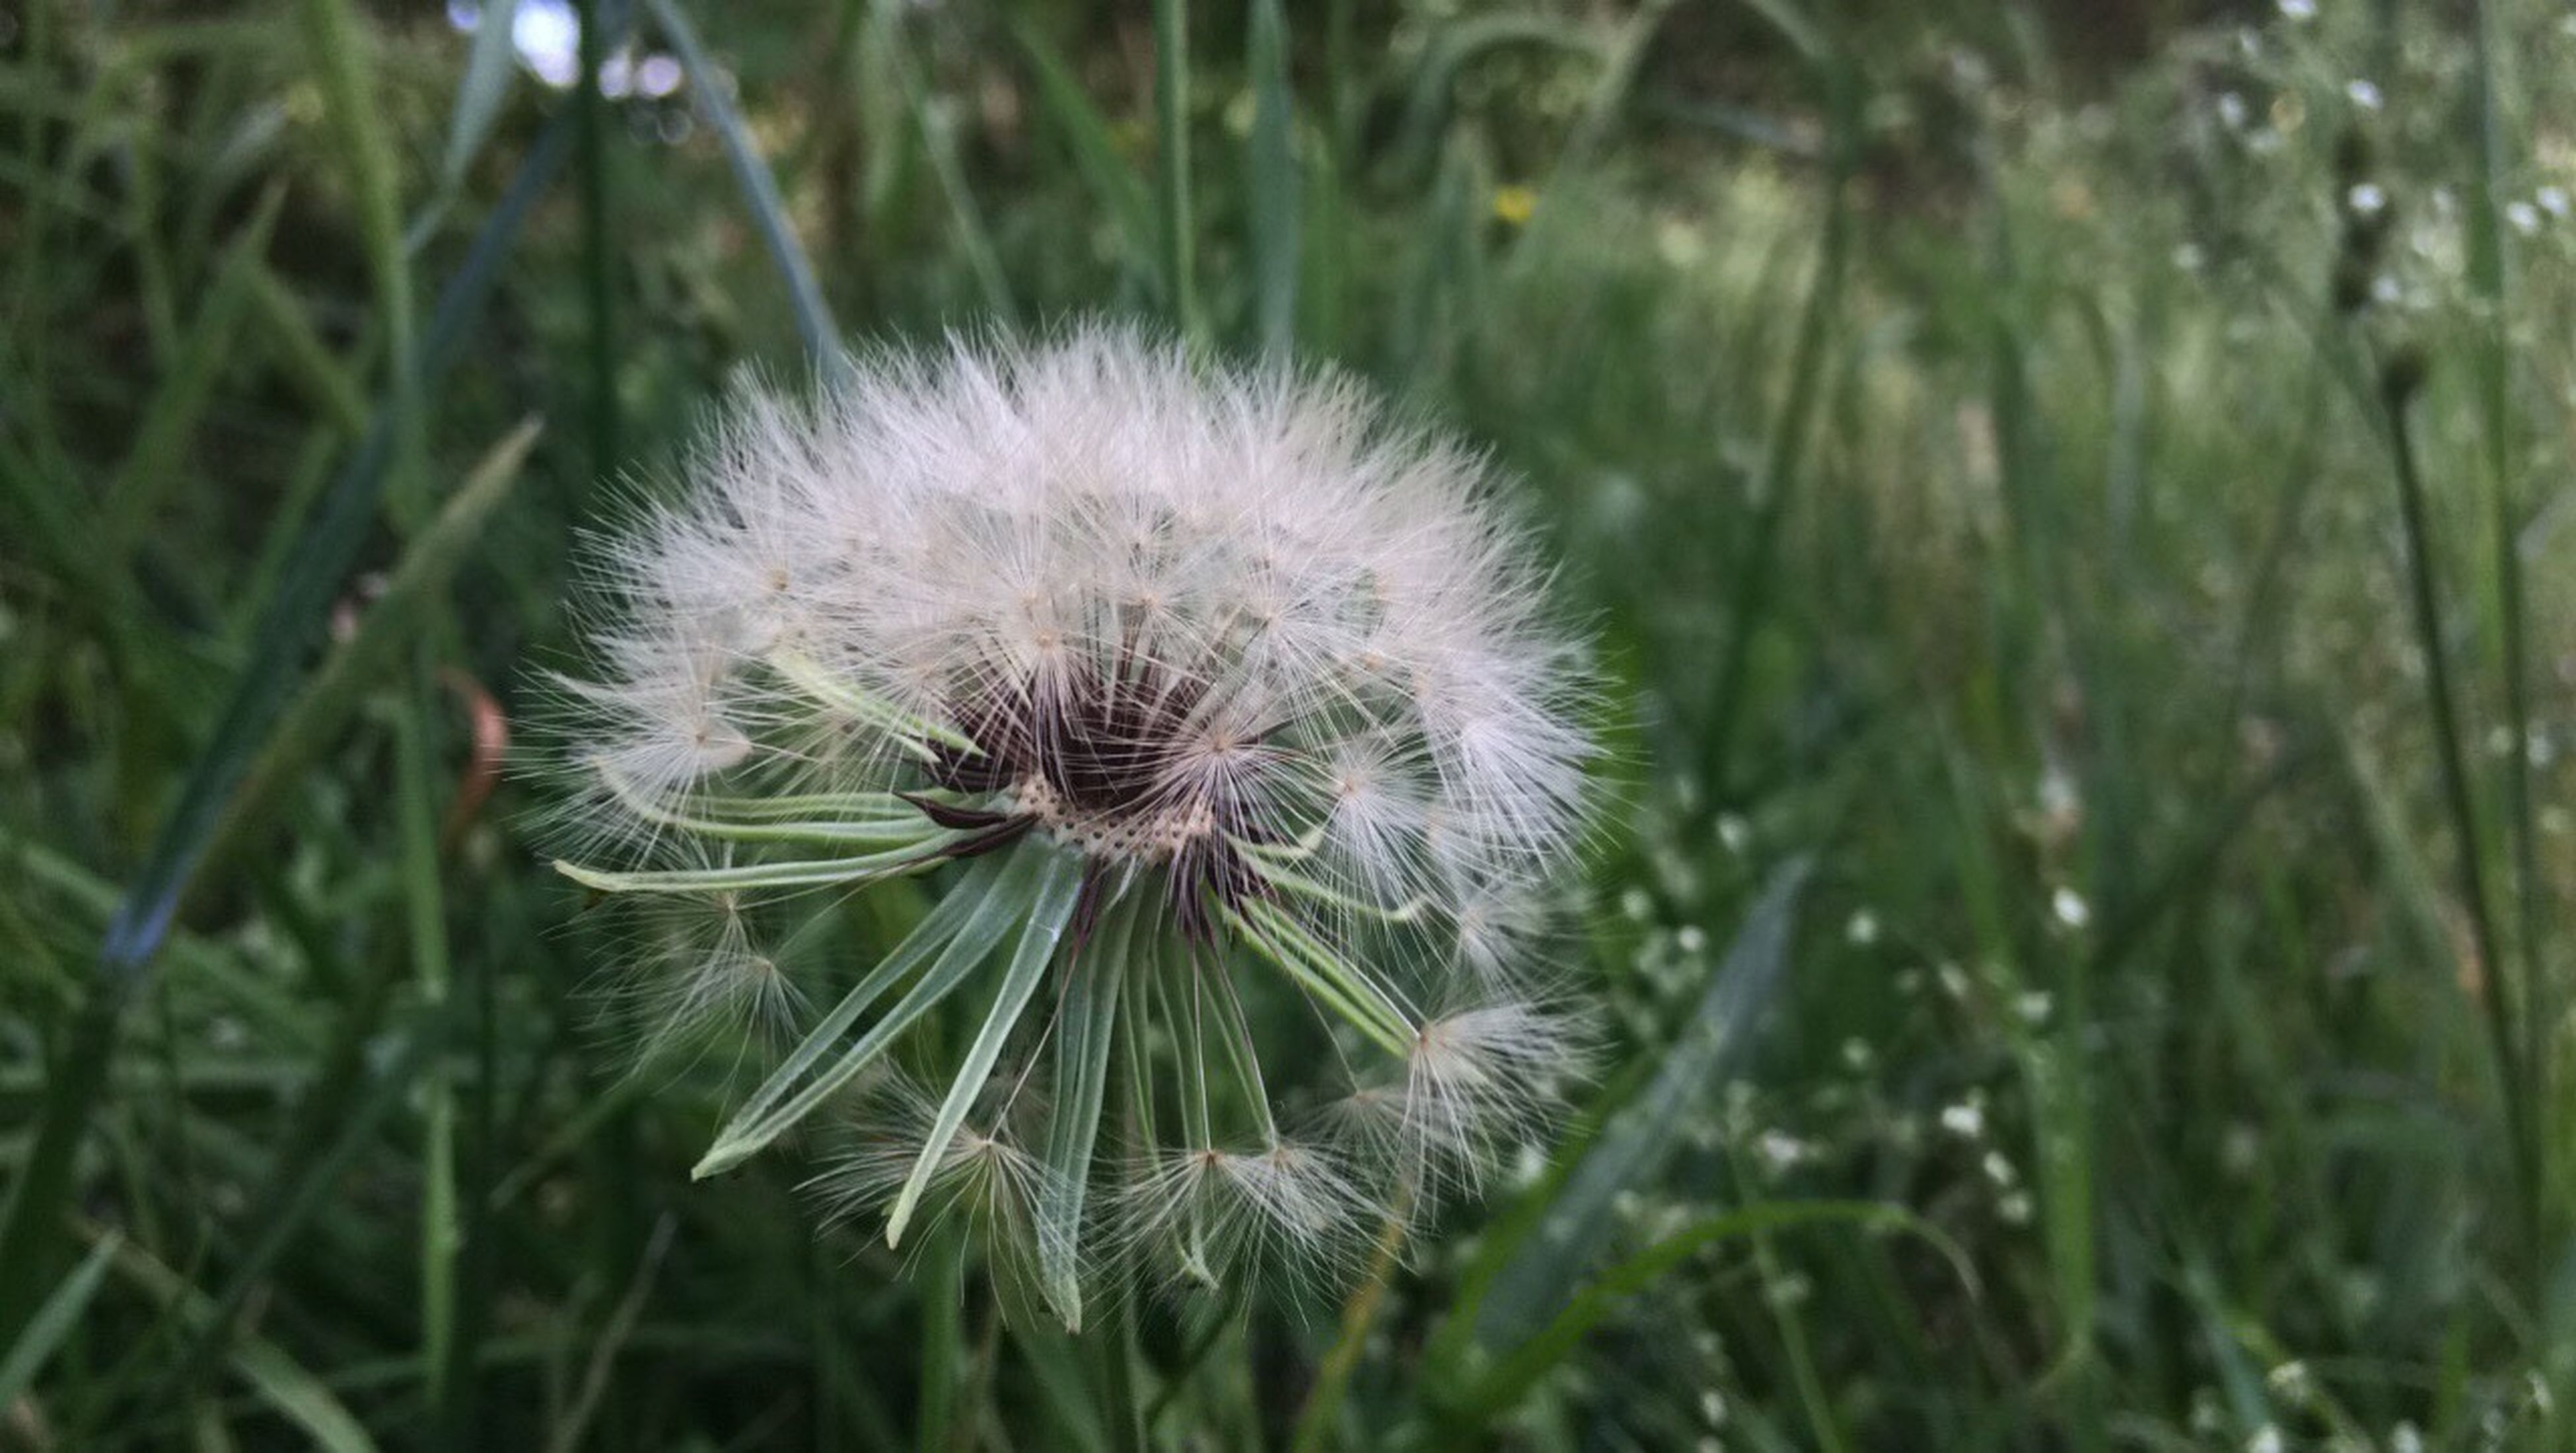 dandelion, flower, growth, nature, fragility, plant, softness, flower head, no people, freshness, close-up, outdoors, thistle, beauty in nature, day